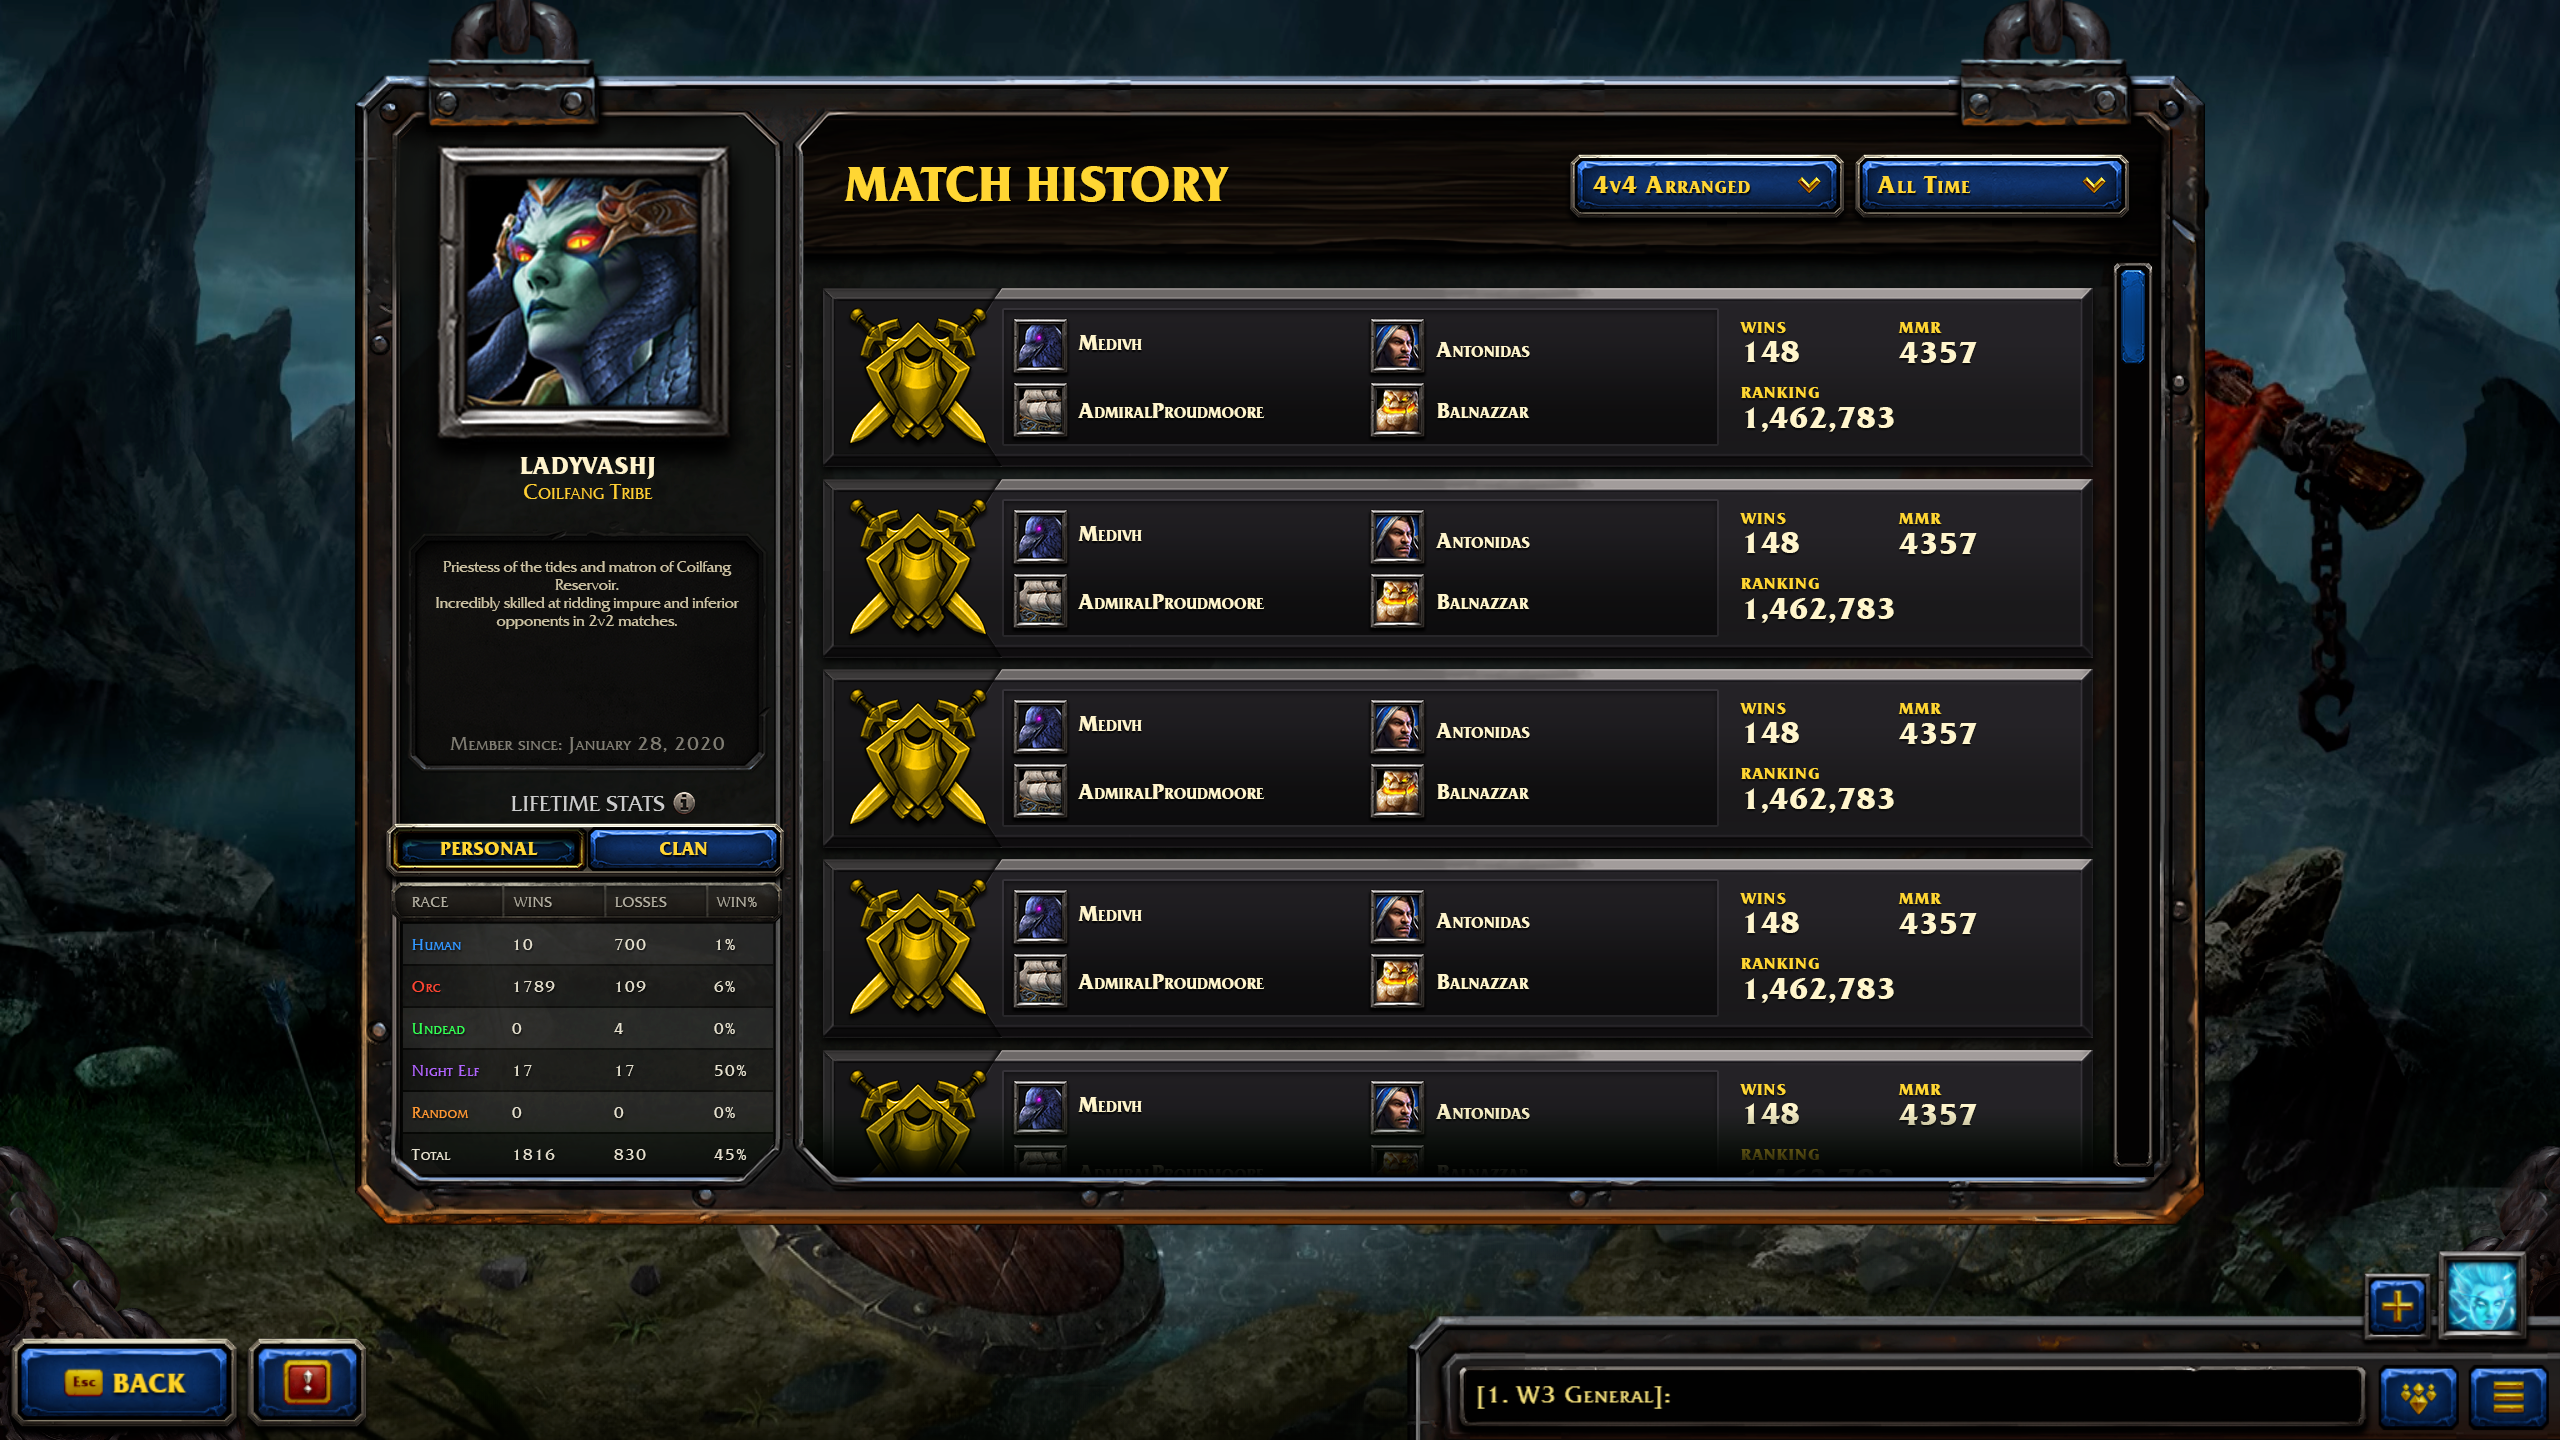 Work in Progress 4 Versus 4 Match History Screen